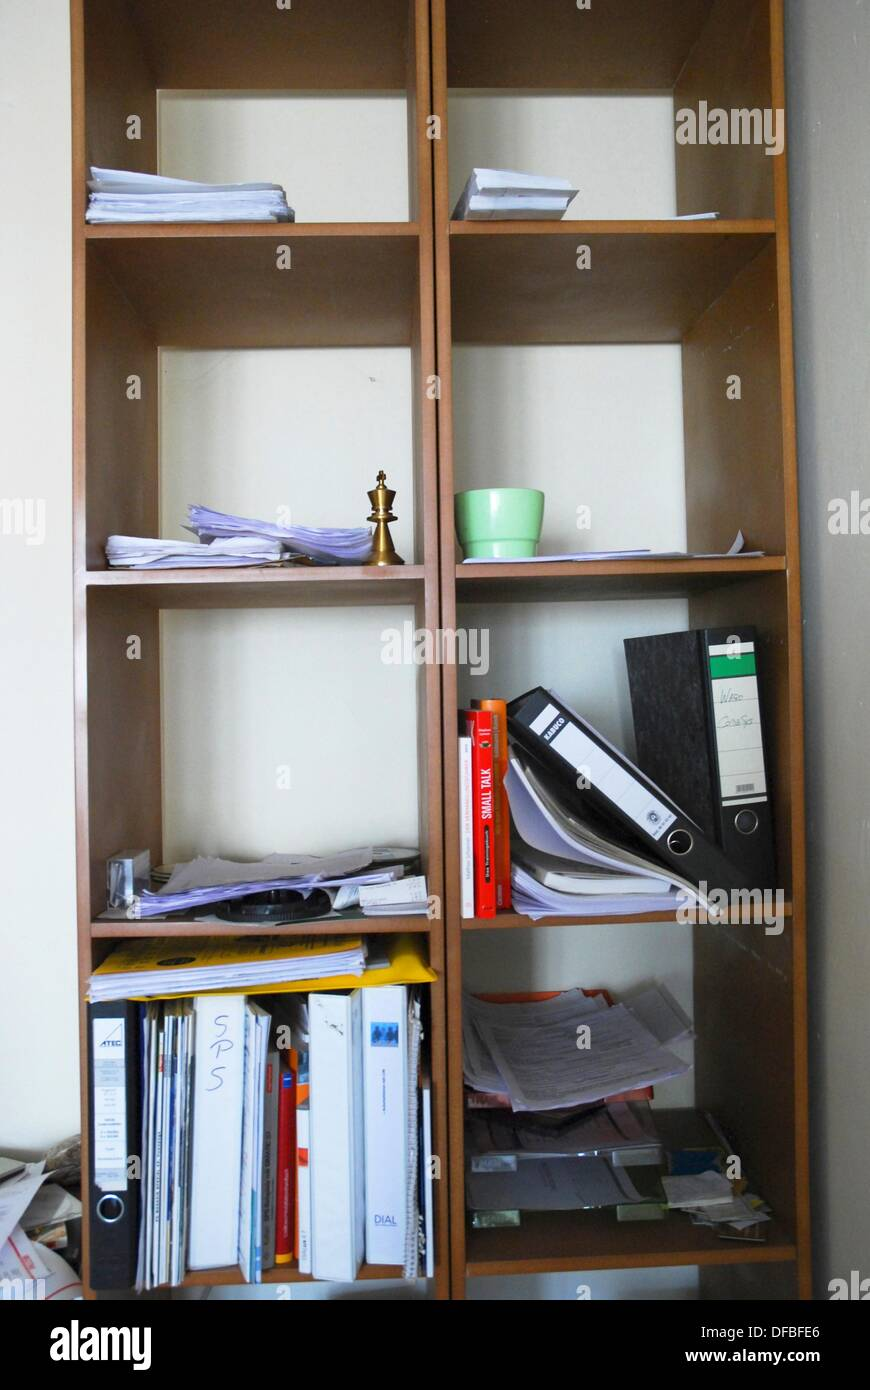 Disorder in an office shelf - Stock Image